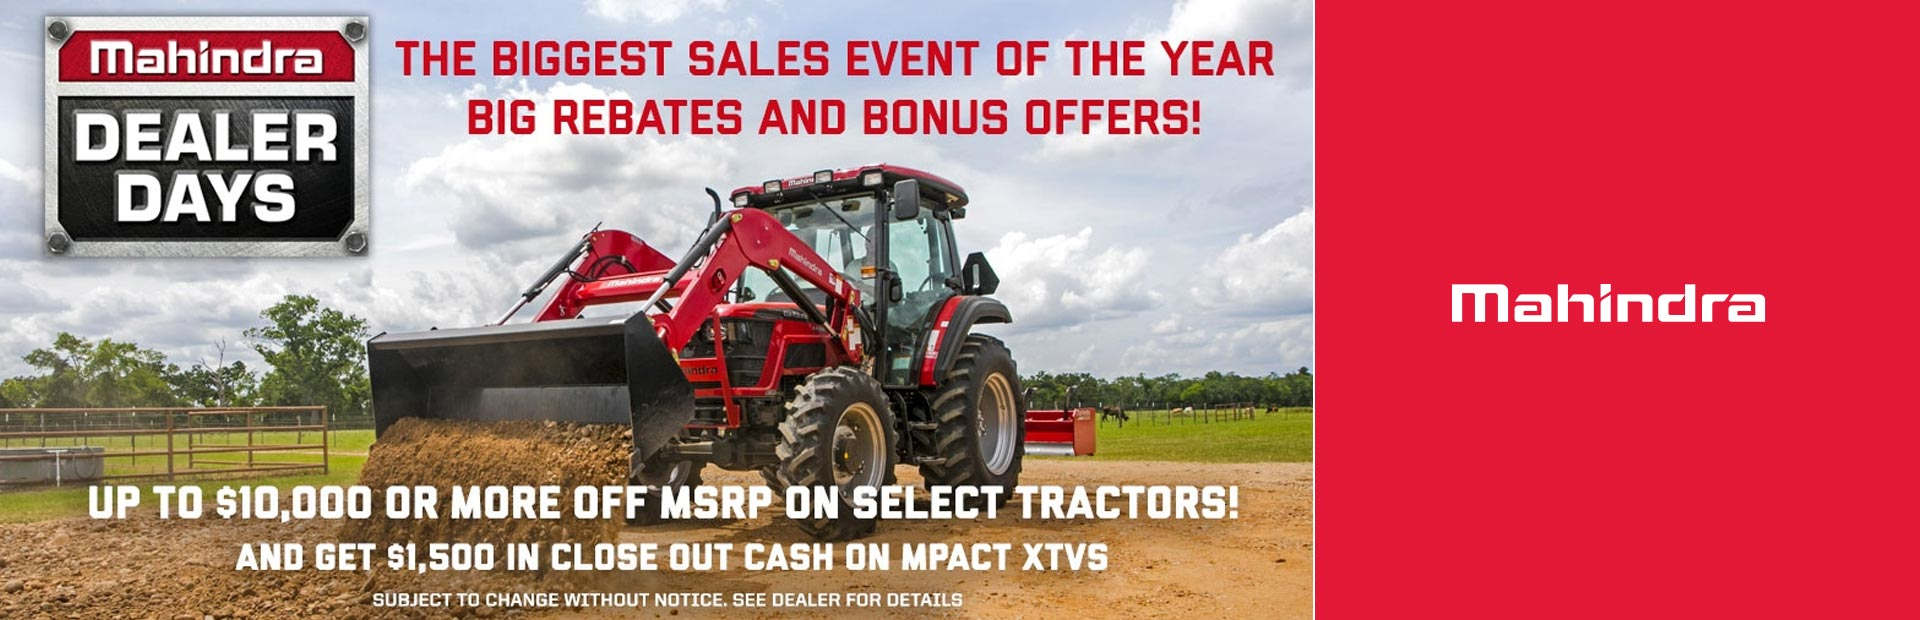 Mahindra: 2018 Dealer Days Sales Event